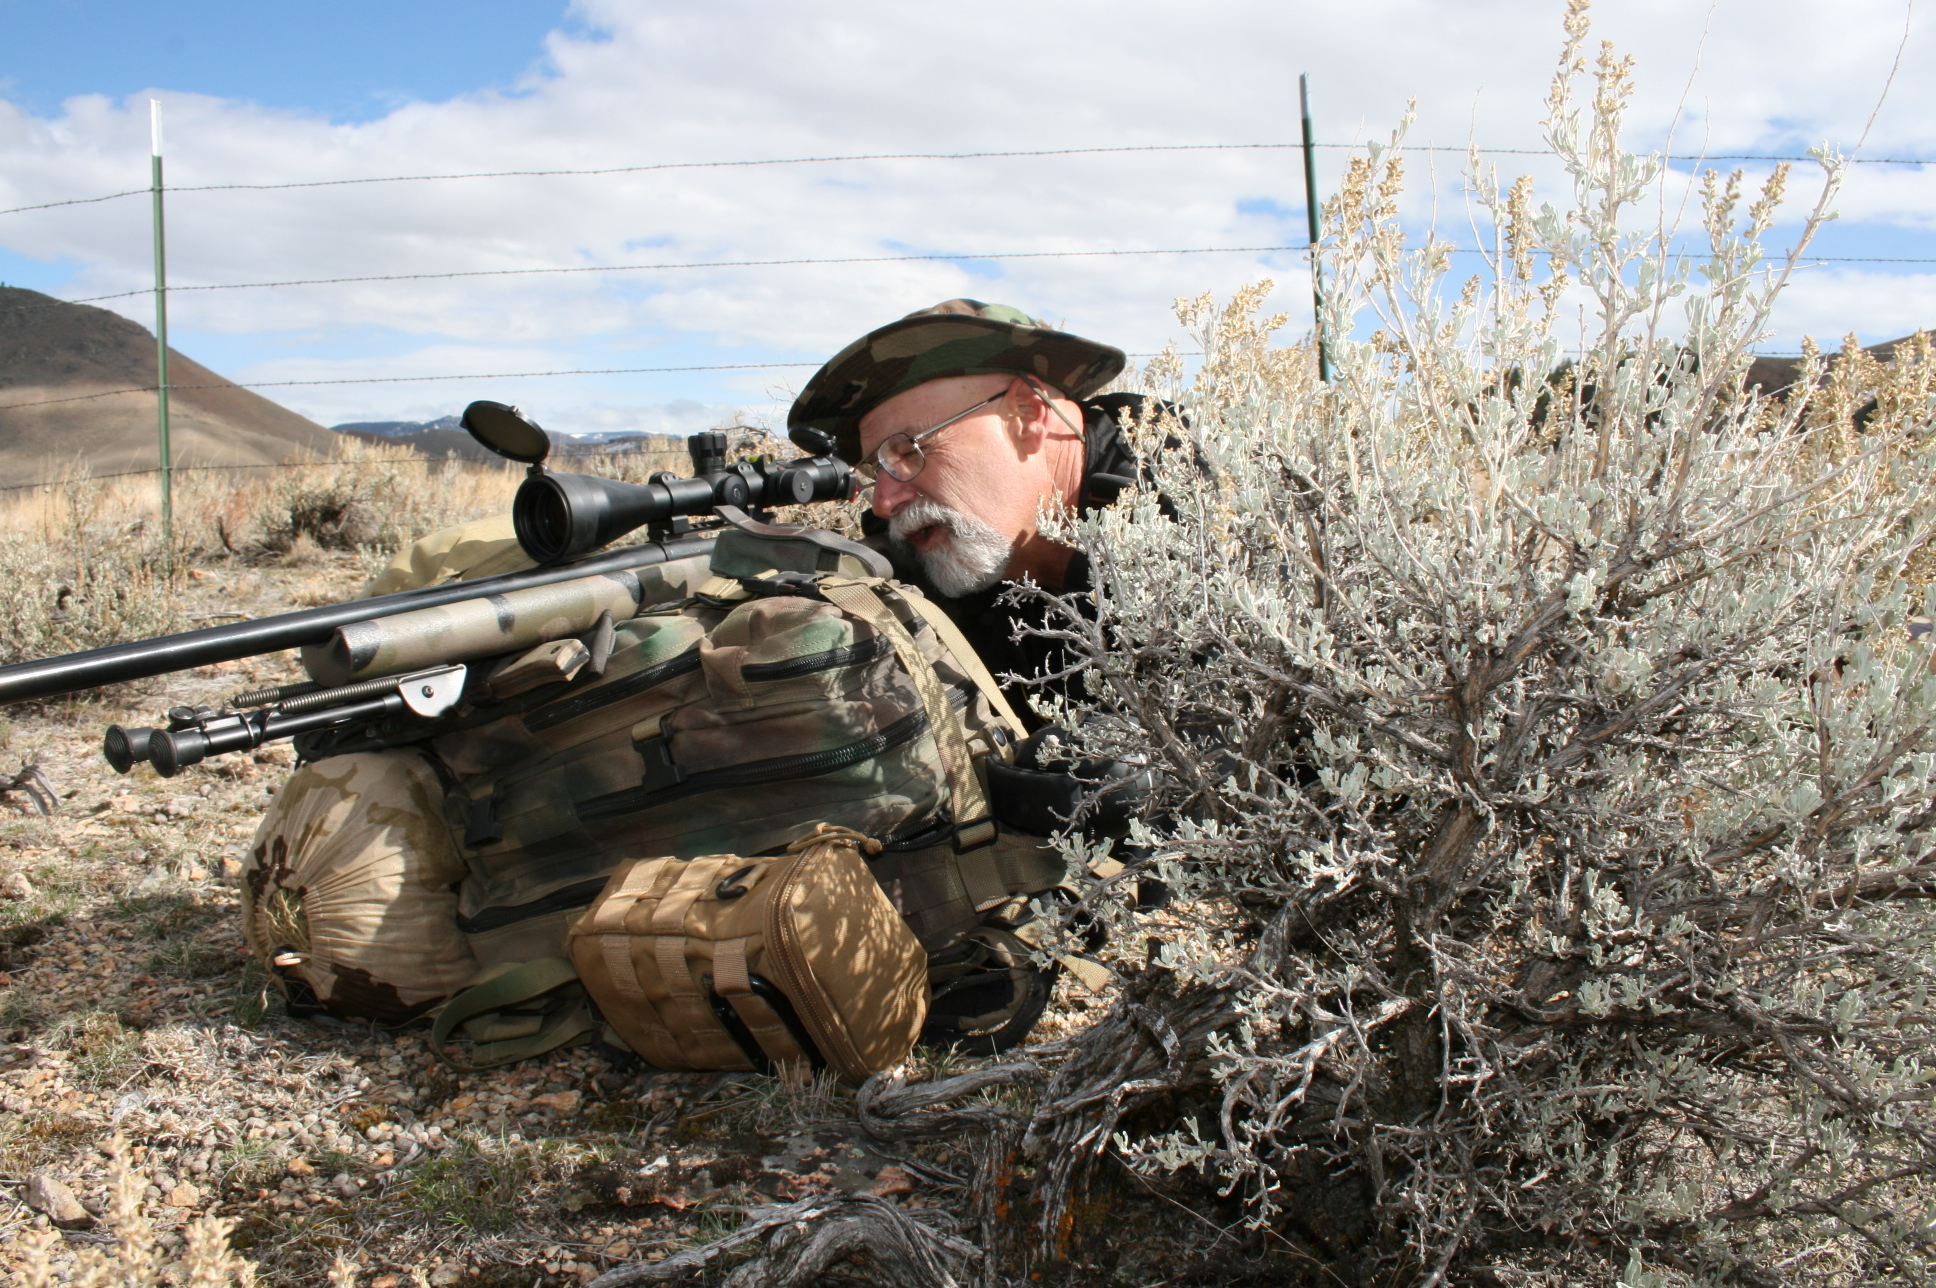 Rural Law Enforcement Snipers Same Mission Different Environment